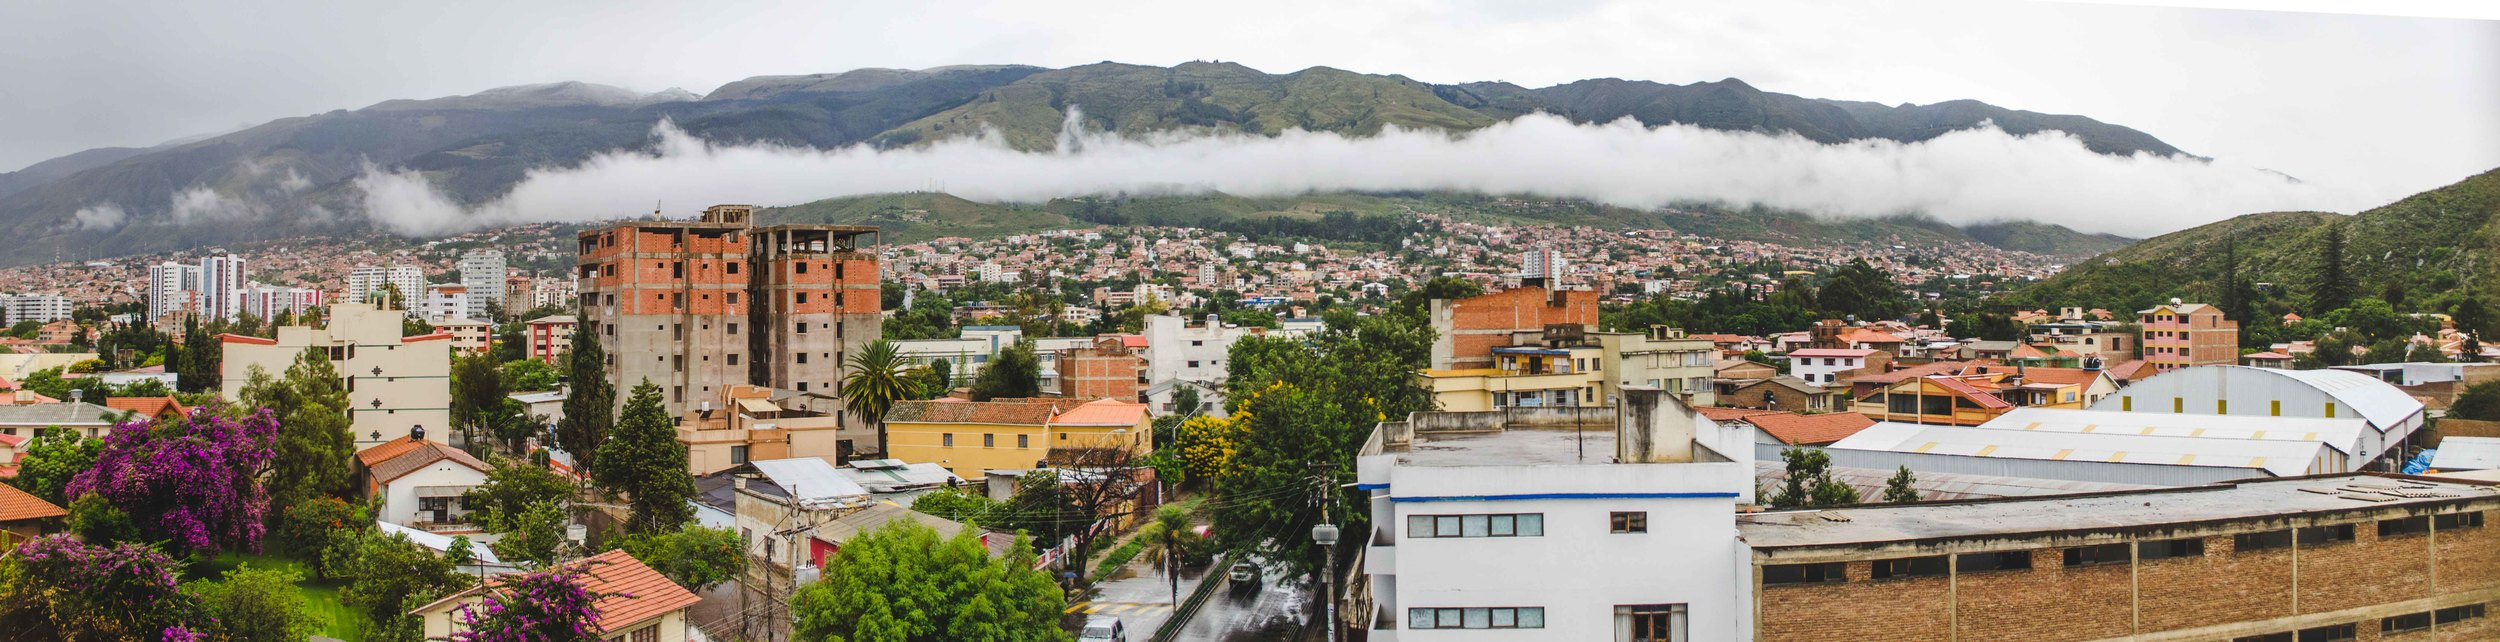 panorama of cochabamba after a rain - with a cloud settled into the hills